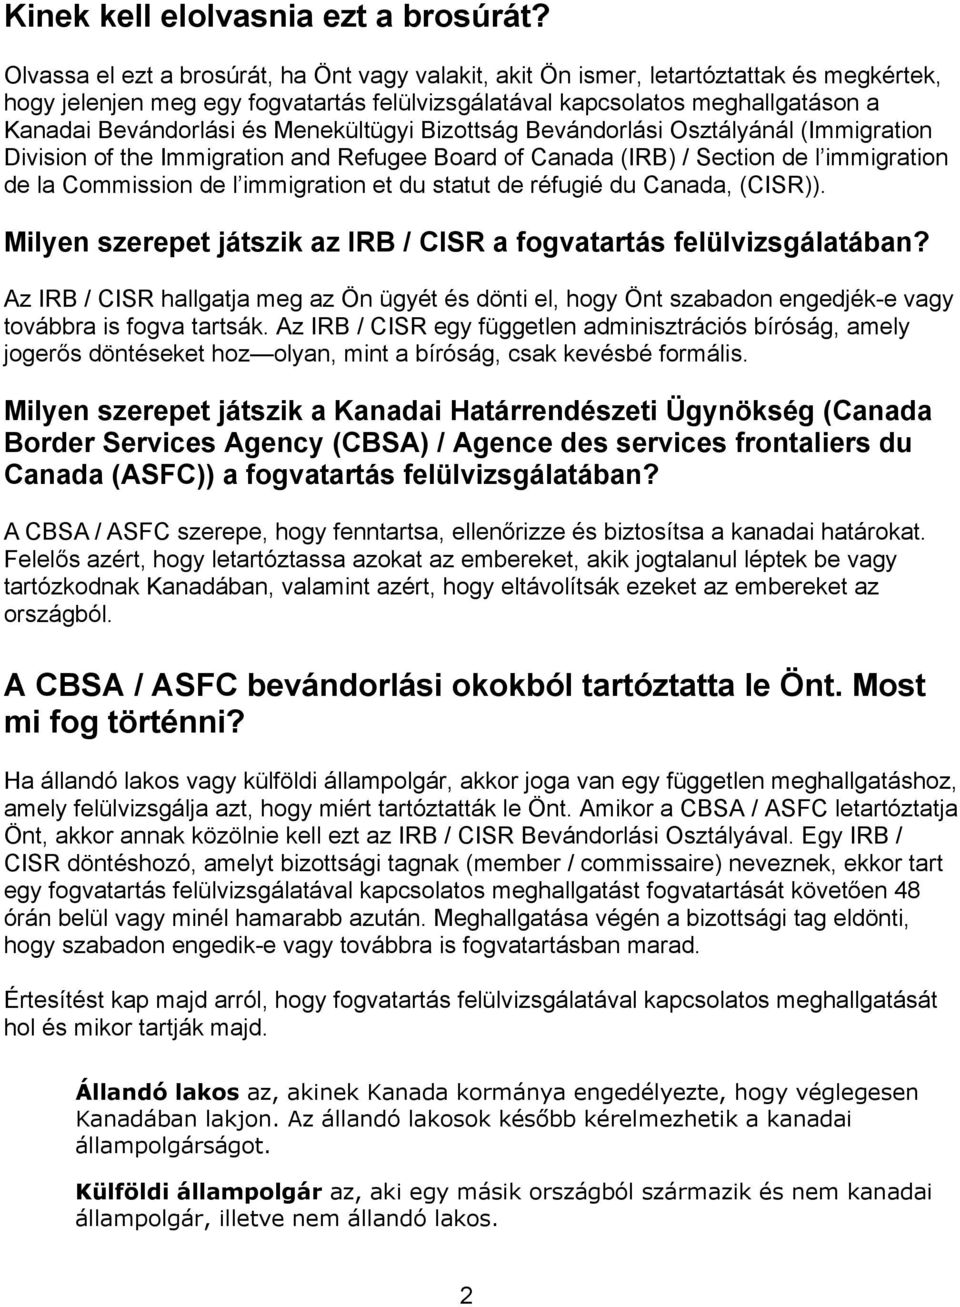 Menekültügyi Bizottság Bevándorlási Osztályánál (Immigration Division of the Immigration and Refugee Board of Canada (IRB) / Section de l immigration de la Commission de l immigration et du statut de